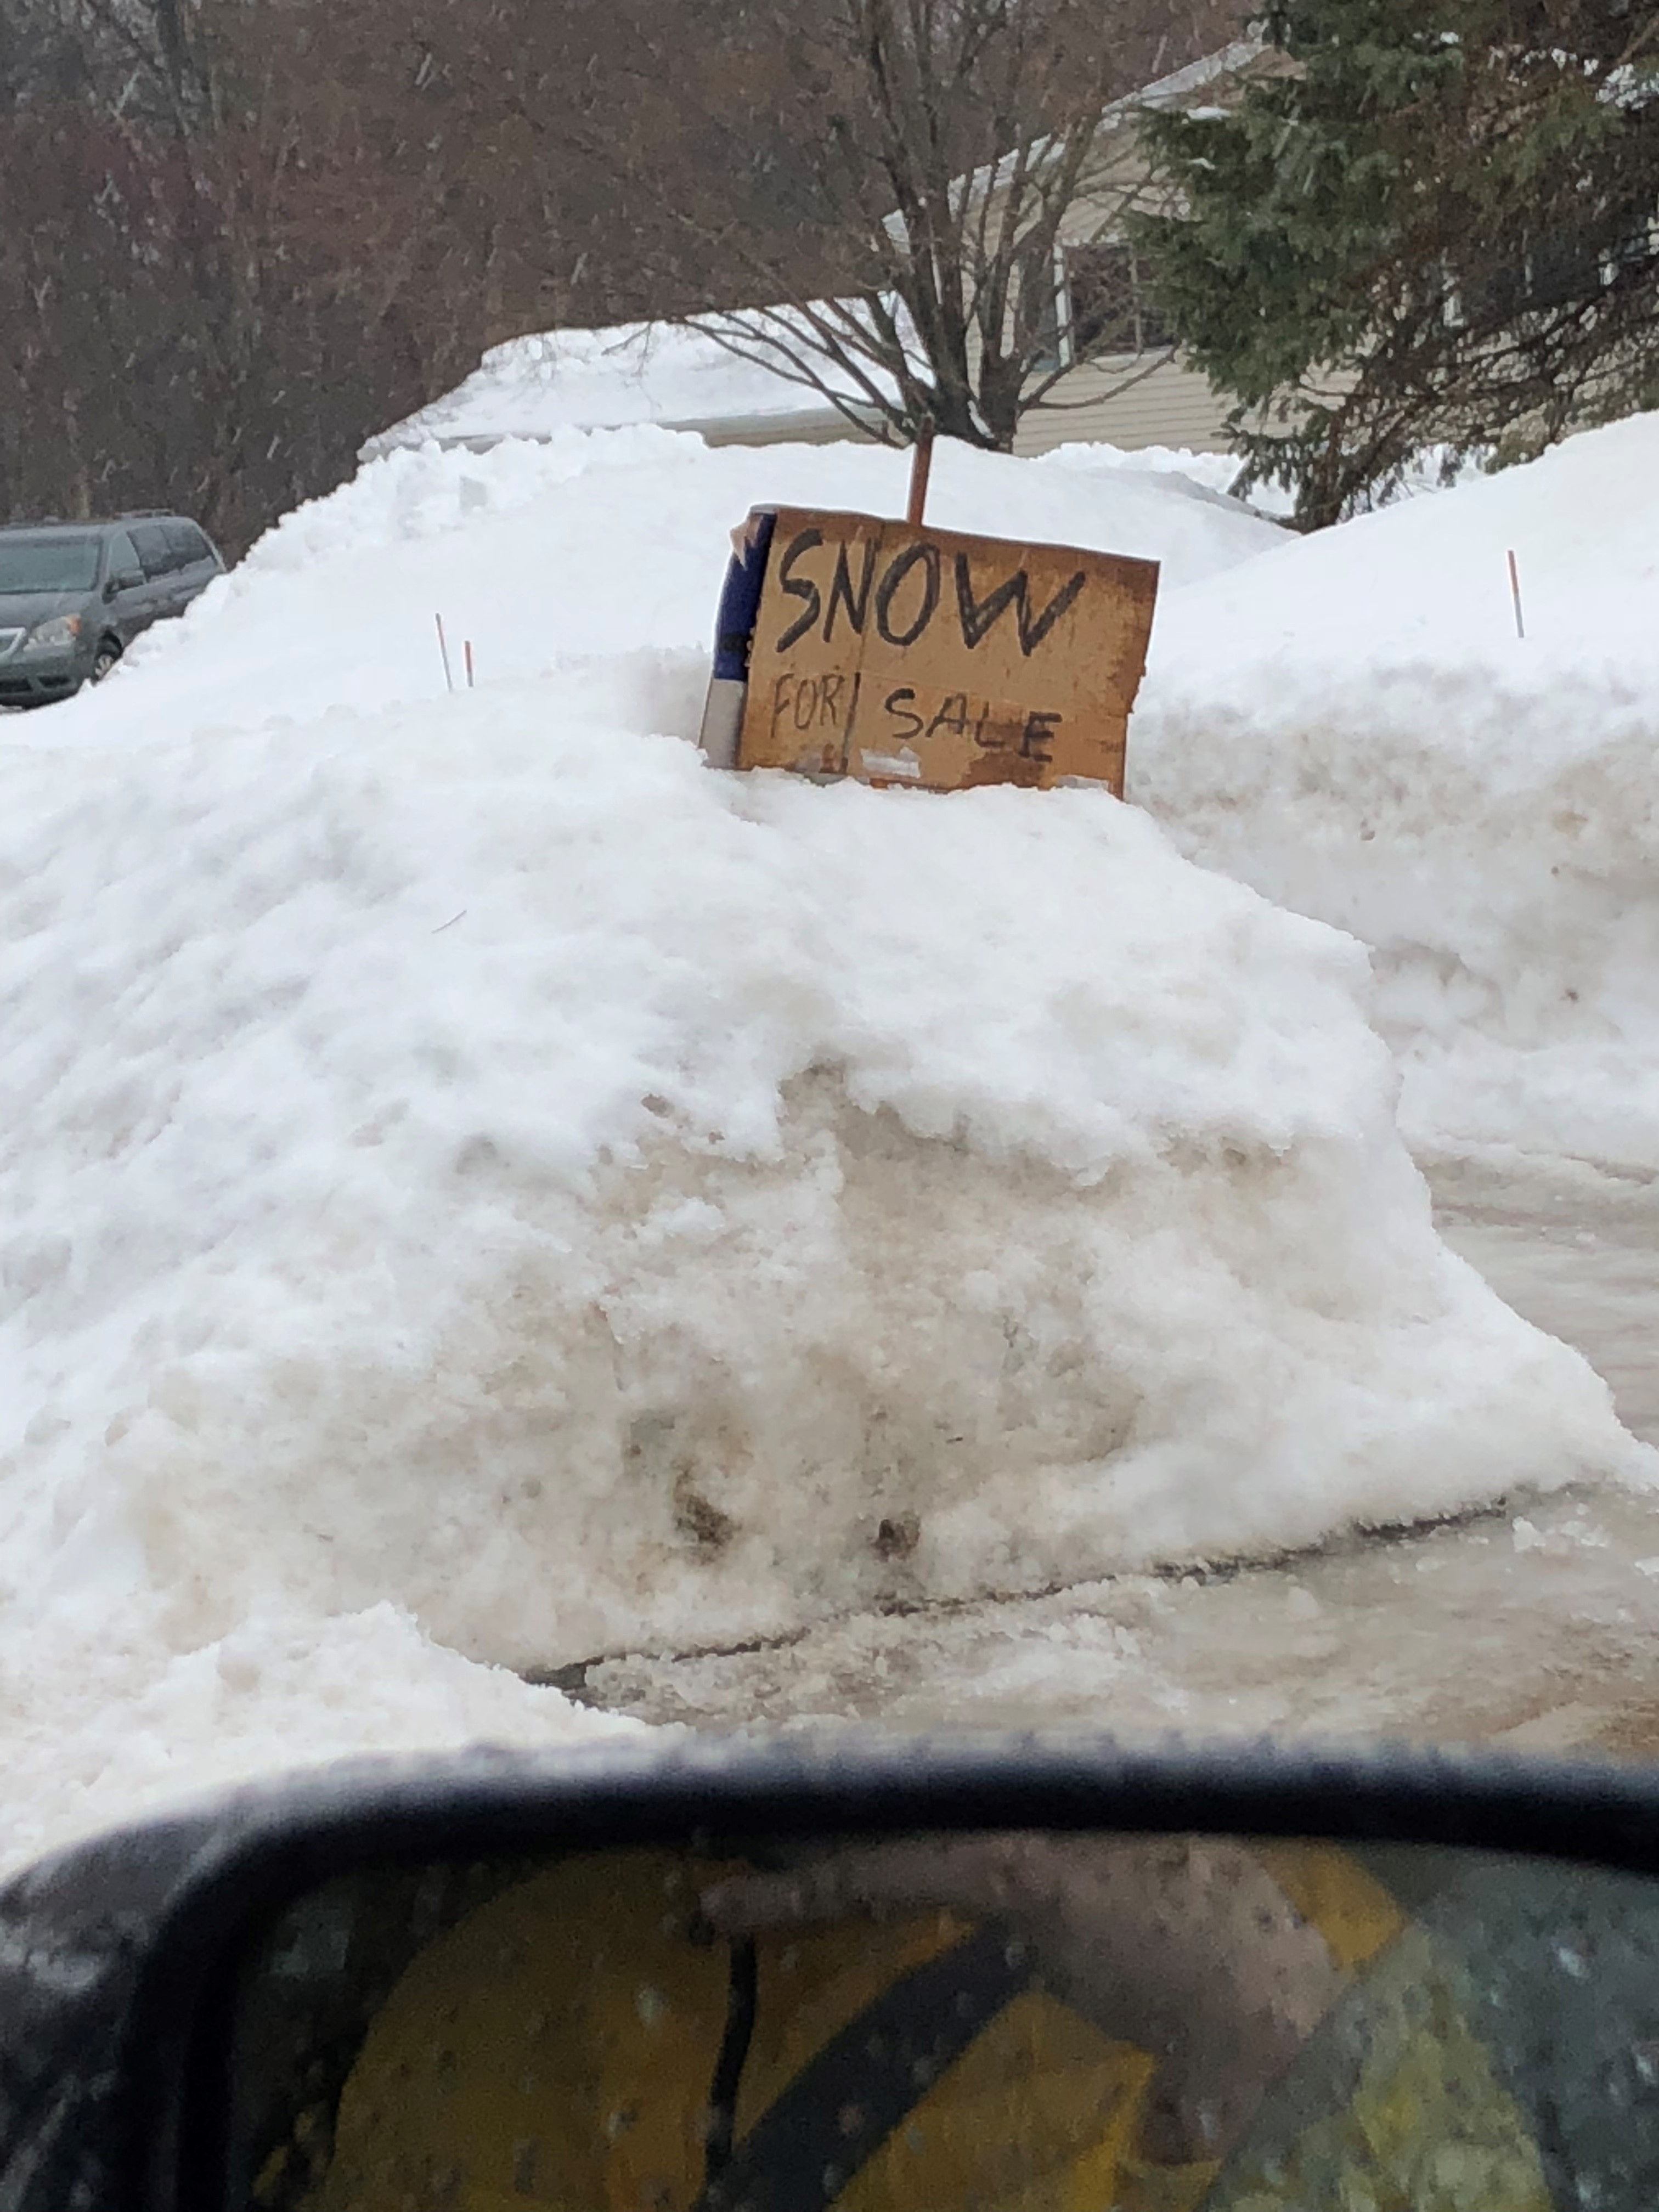 Just for Fun Snow for Sale sign